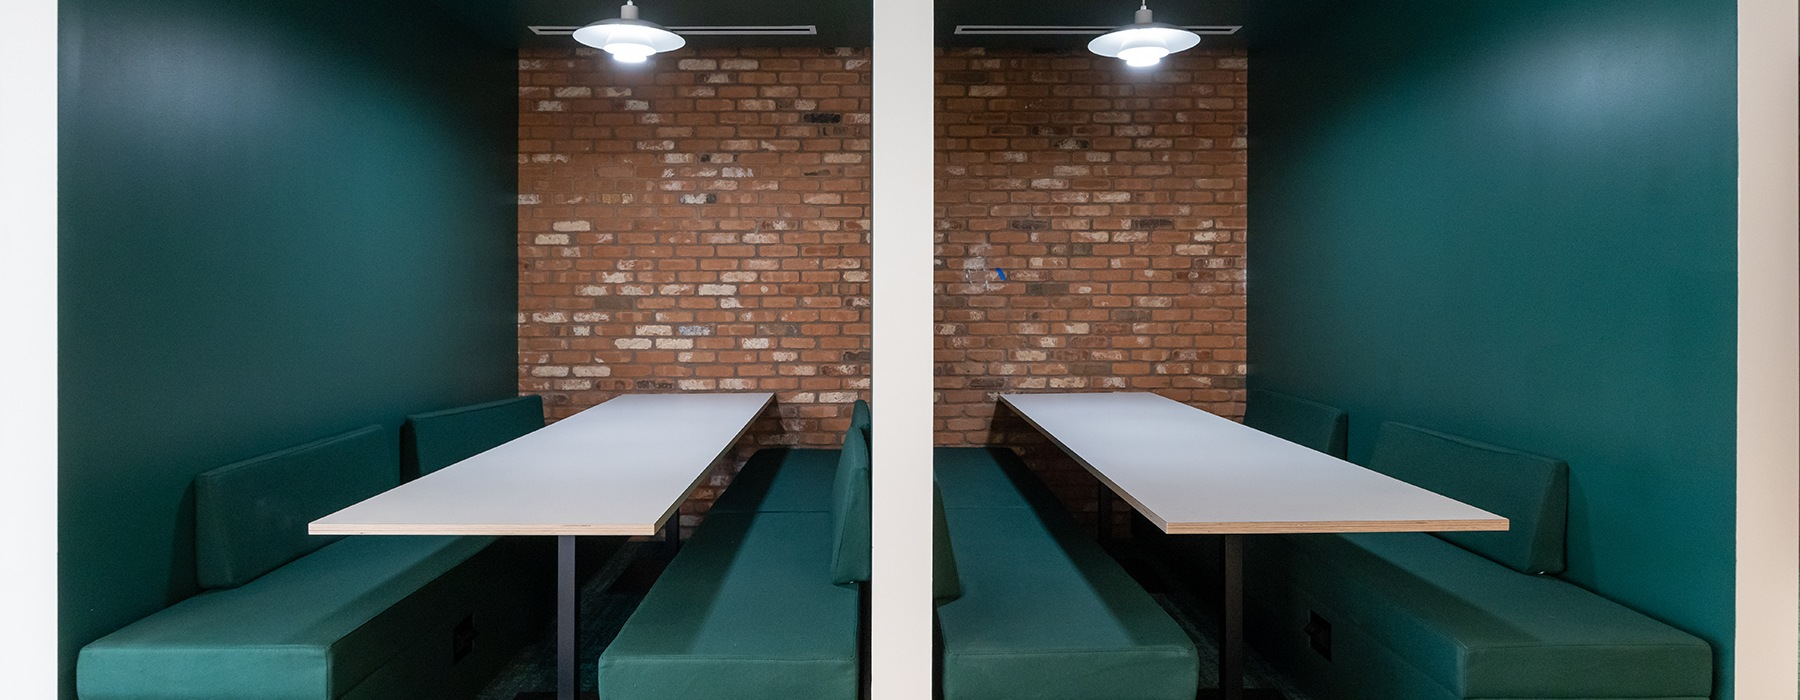 Co-working space area with ample seating